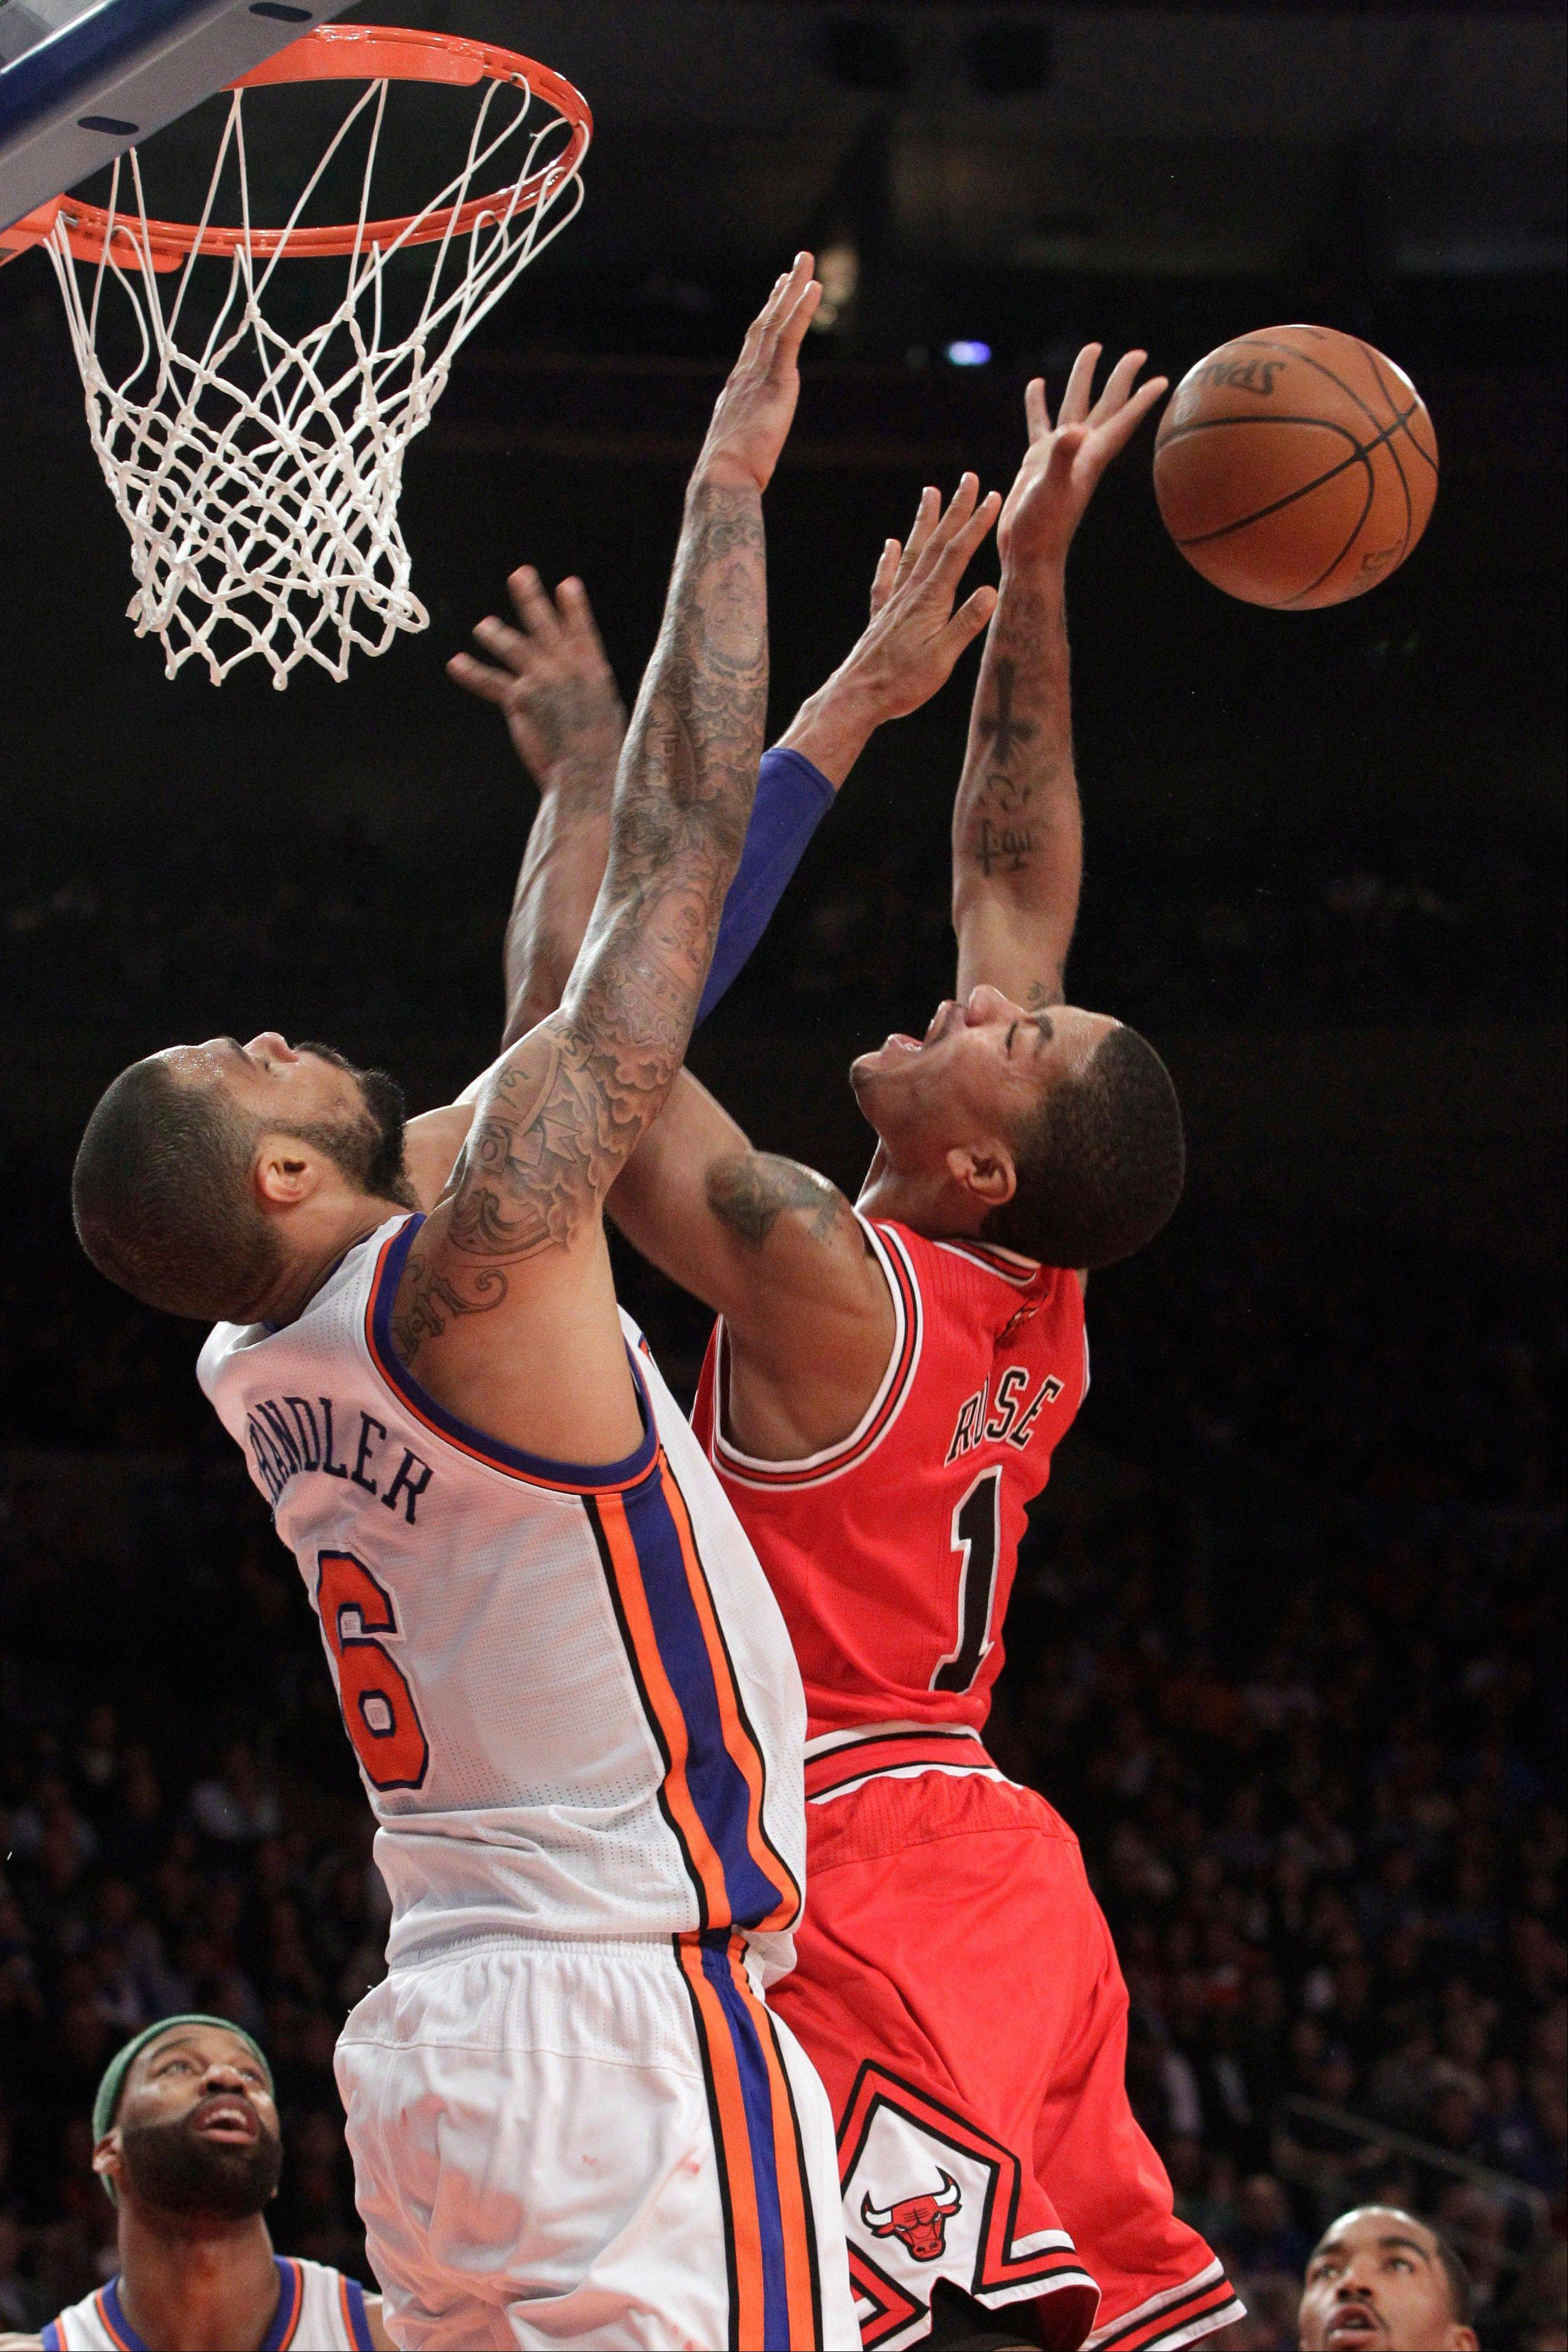 New York Knicks' Tyson Chandler, left, blocks a shot by Chicago Bulls' Derrick Rose during the second half of an NBA basketball game, Sunday, April 8, 2012, at Madison Square Garden in New York. The Knicks won 100-99 in overtime.